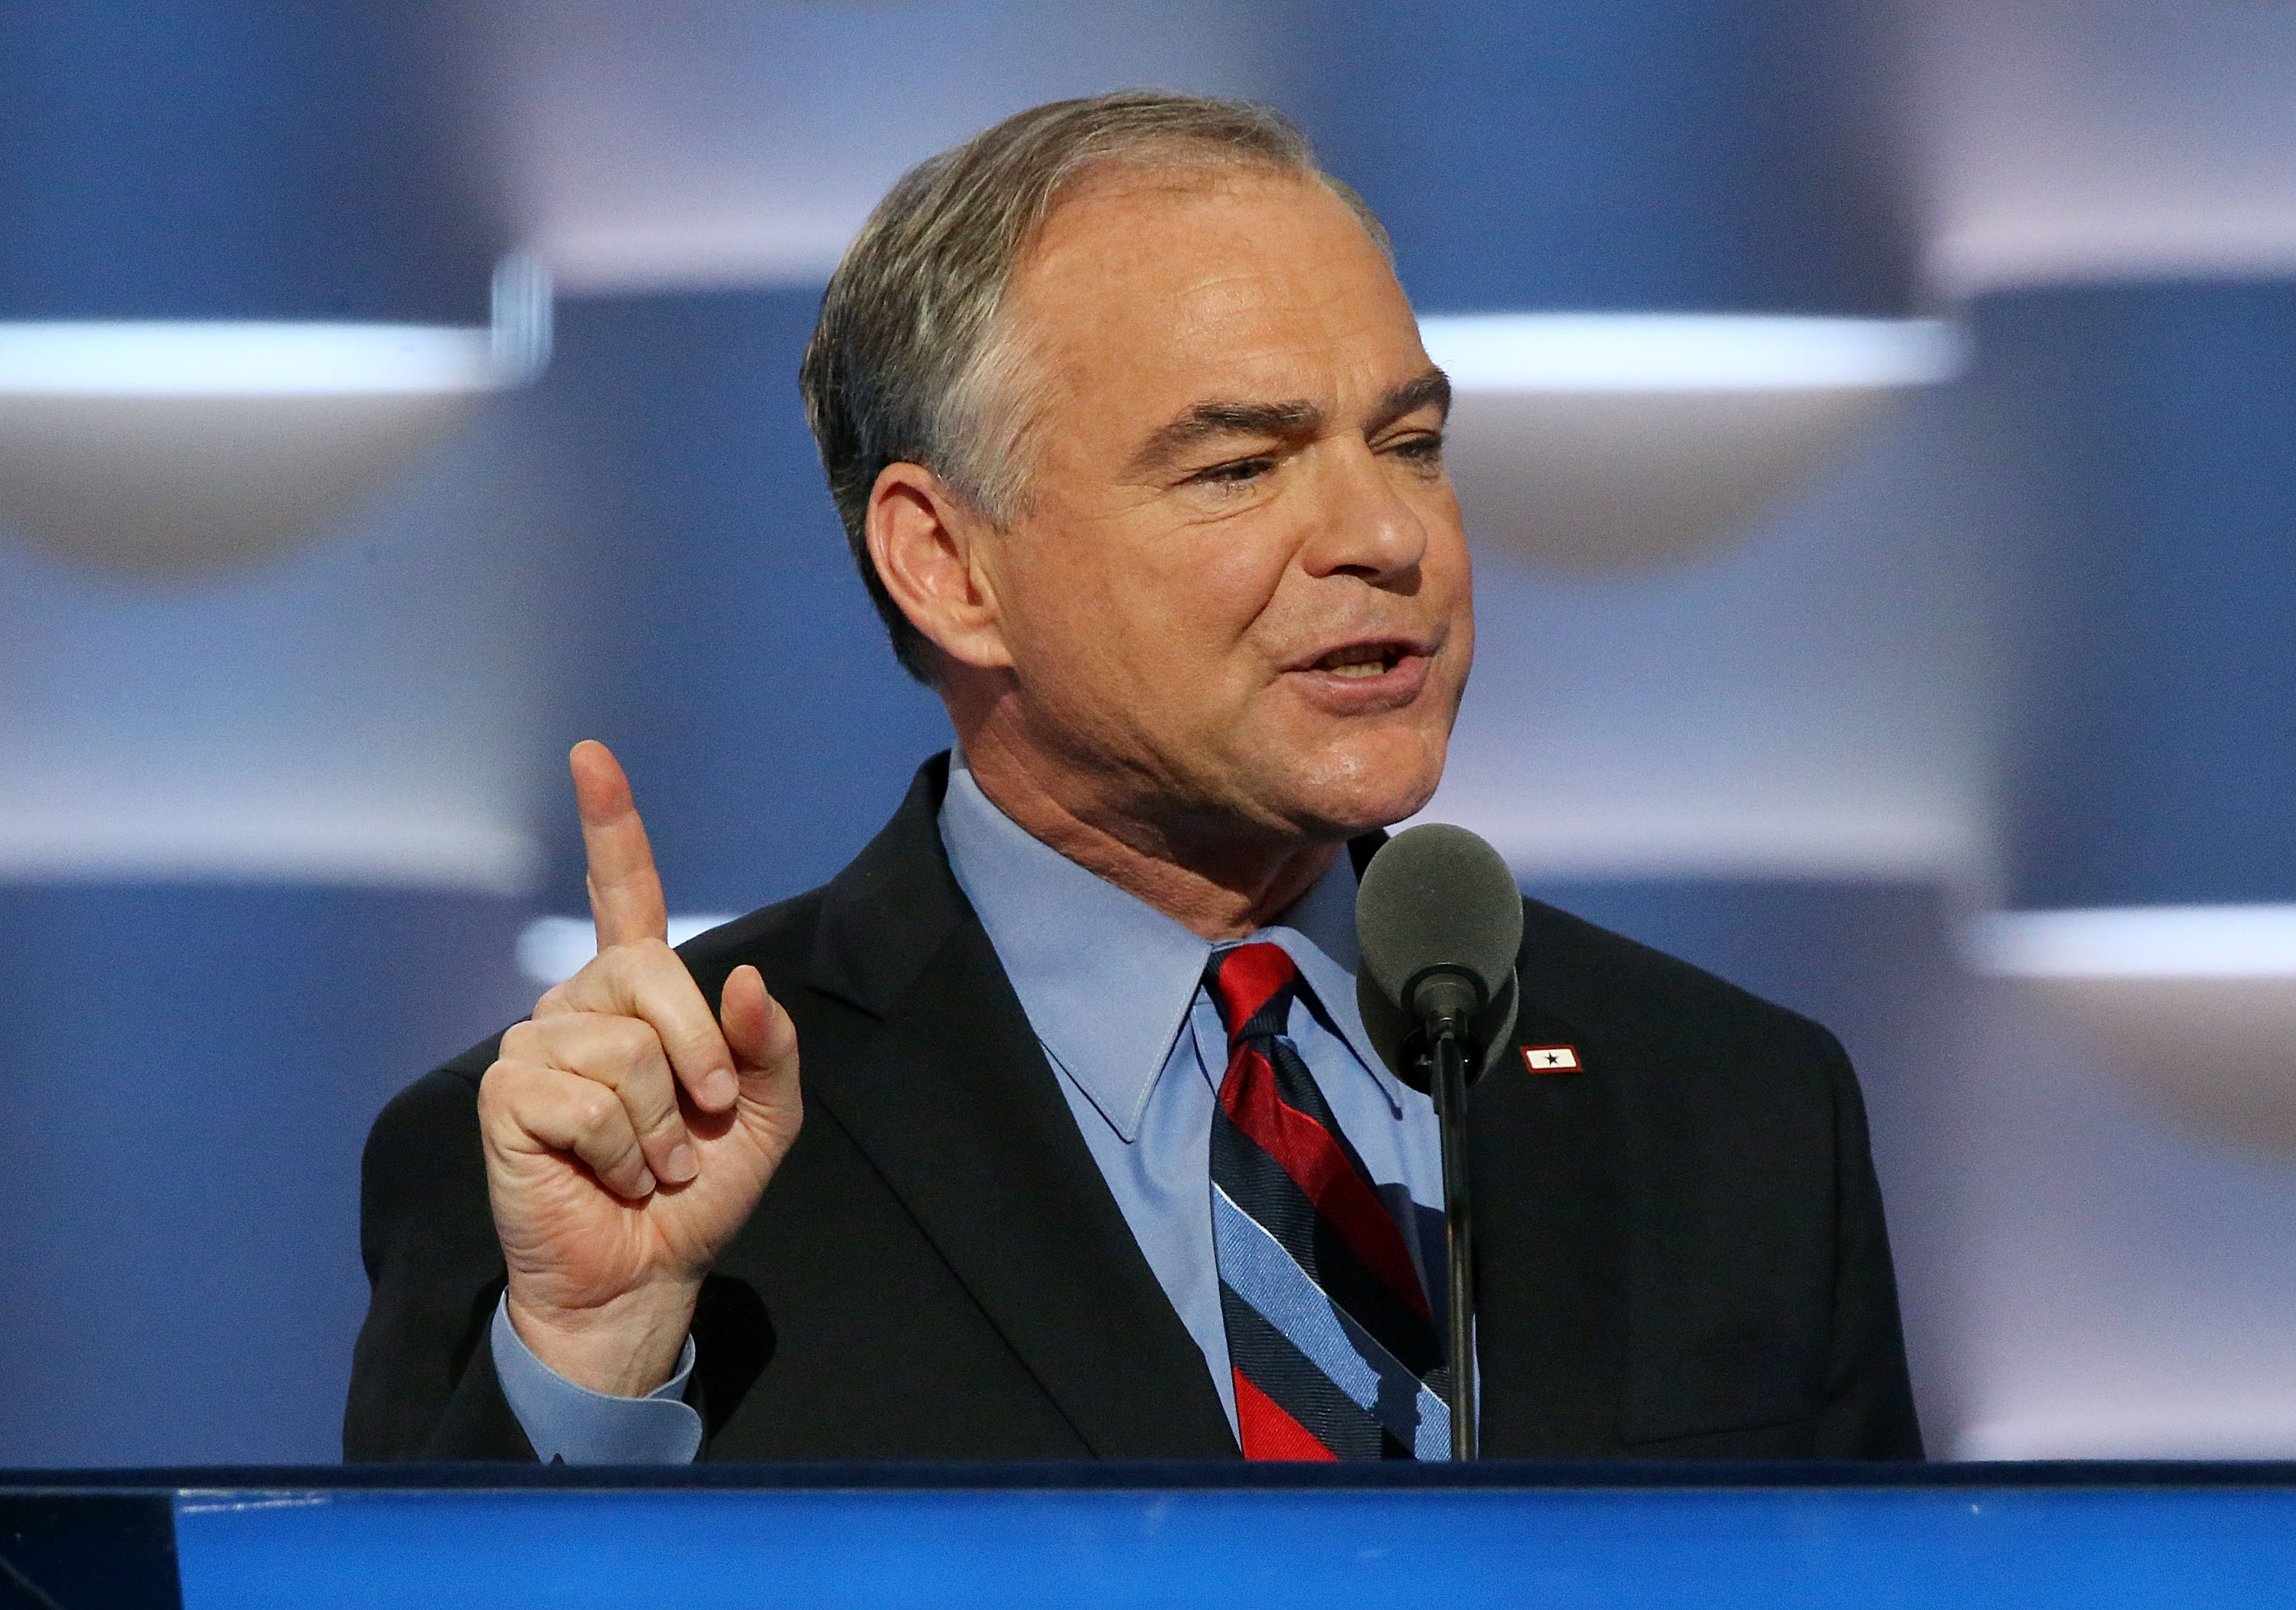 U.S. Vice President nominee Tim Kaine delivers remarks on the third day of the Democratic National Convention at the Wells Fargo Center on July 27, 2016 in Philadelphia, Pennsylvania.